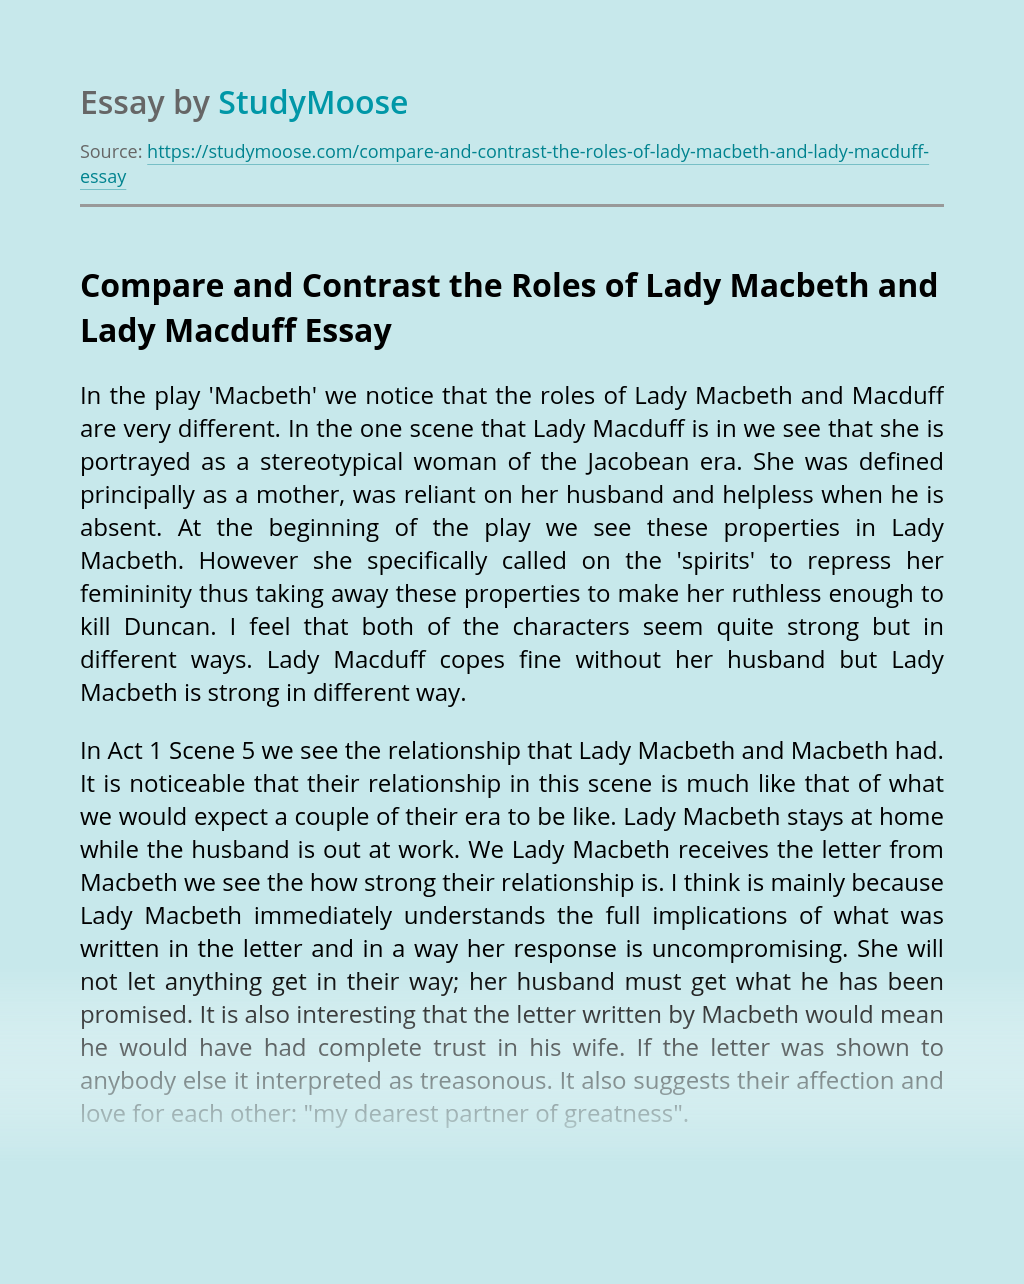 Compare and Contrast the Roles of Lady Macbeth and Lady Macduff